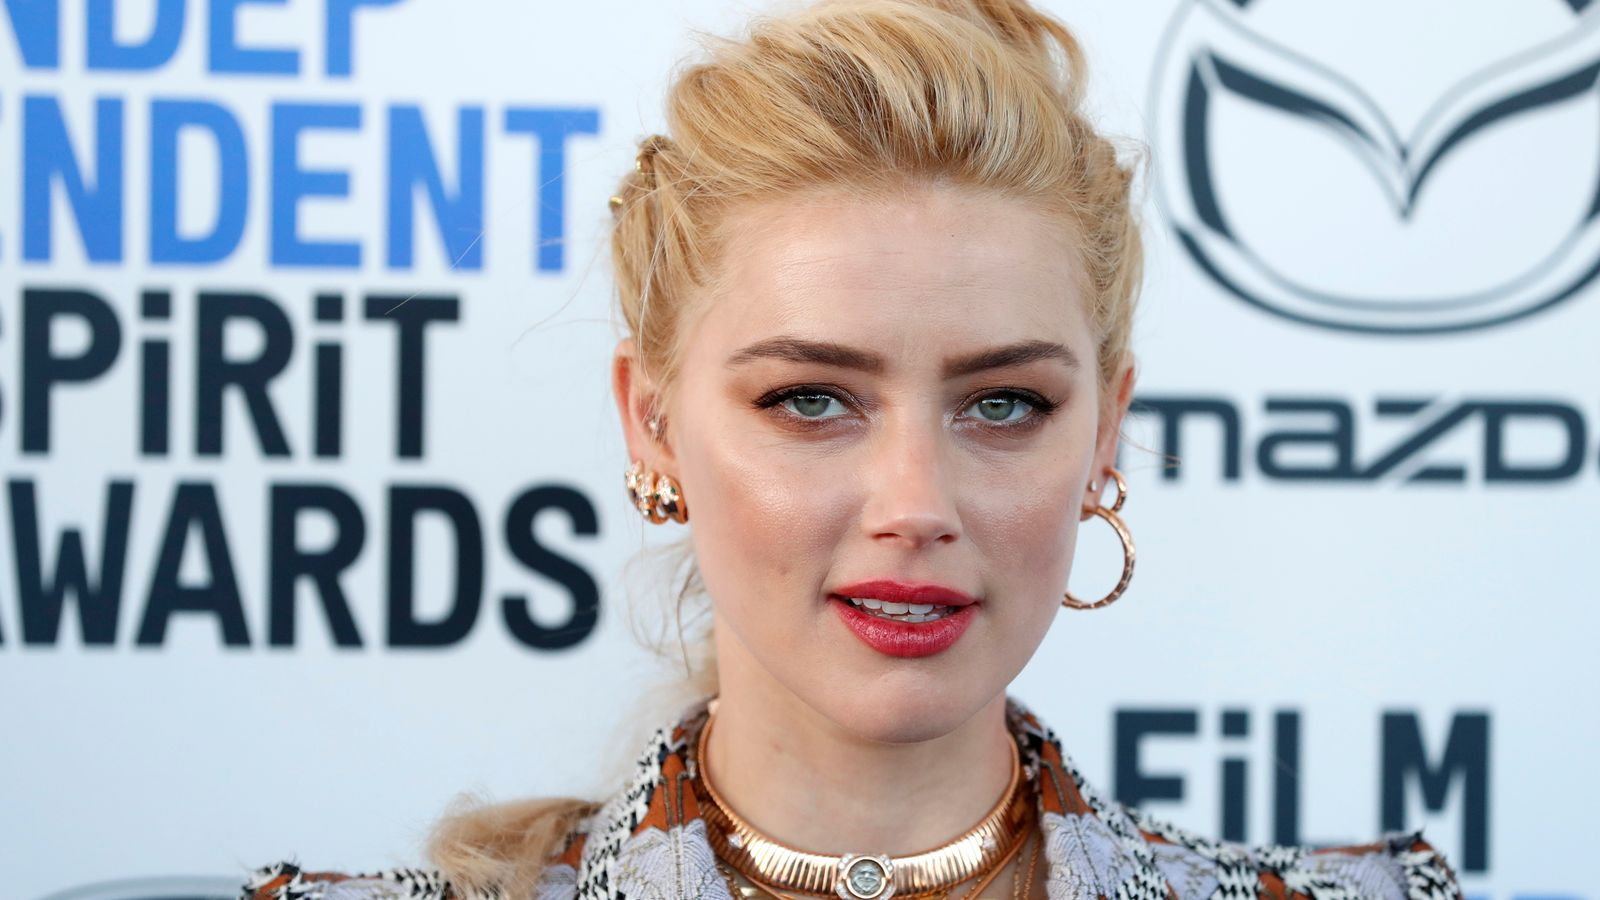 Amber Heard had affairs with Elon Musk and James Franco, Johnny Depp's lawyers say | Ents & Arts News